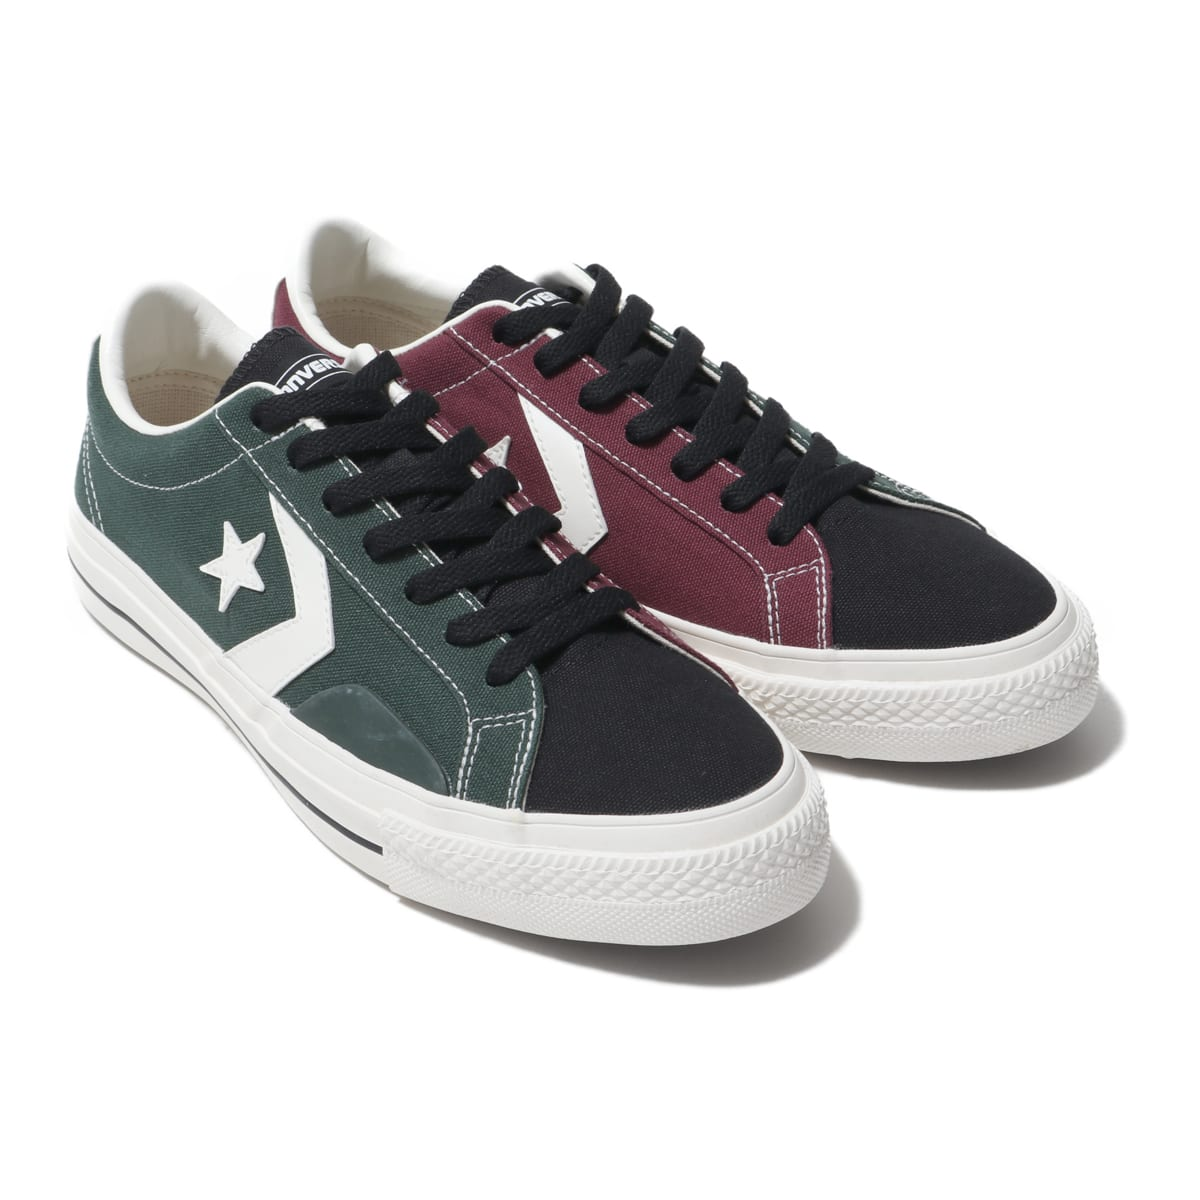 CONVERSE PRORIDE SK CV OX GREEN/BLACK/RED 19FW-I_photo_large